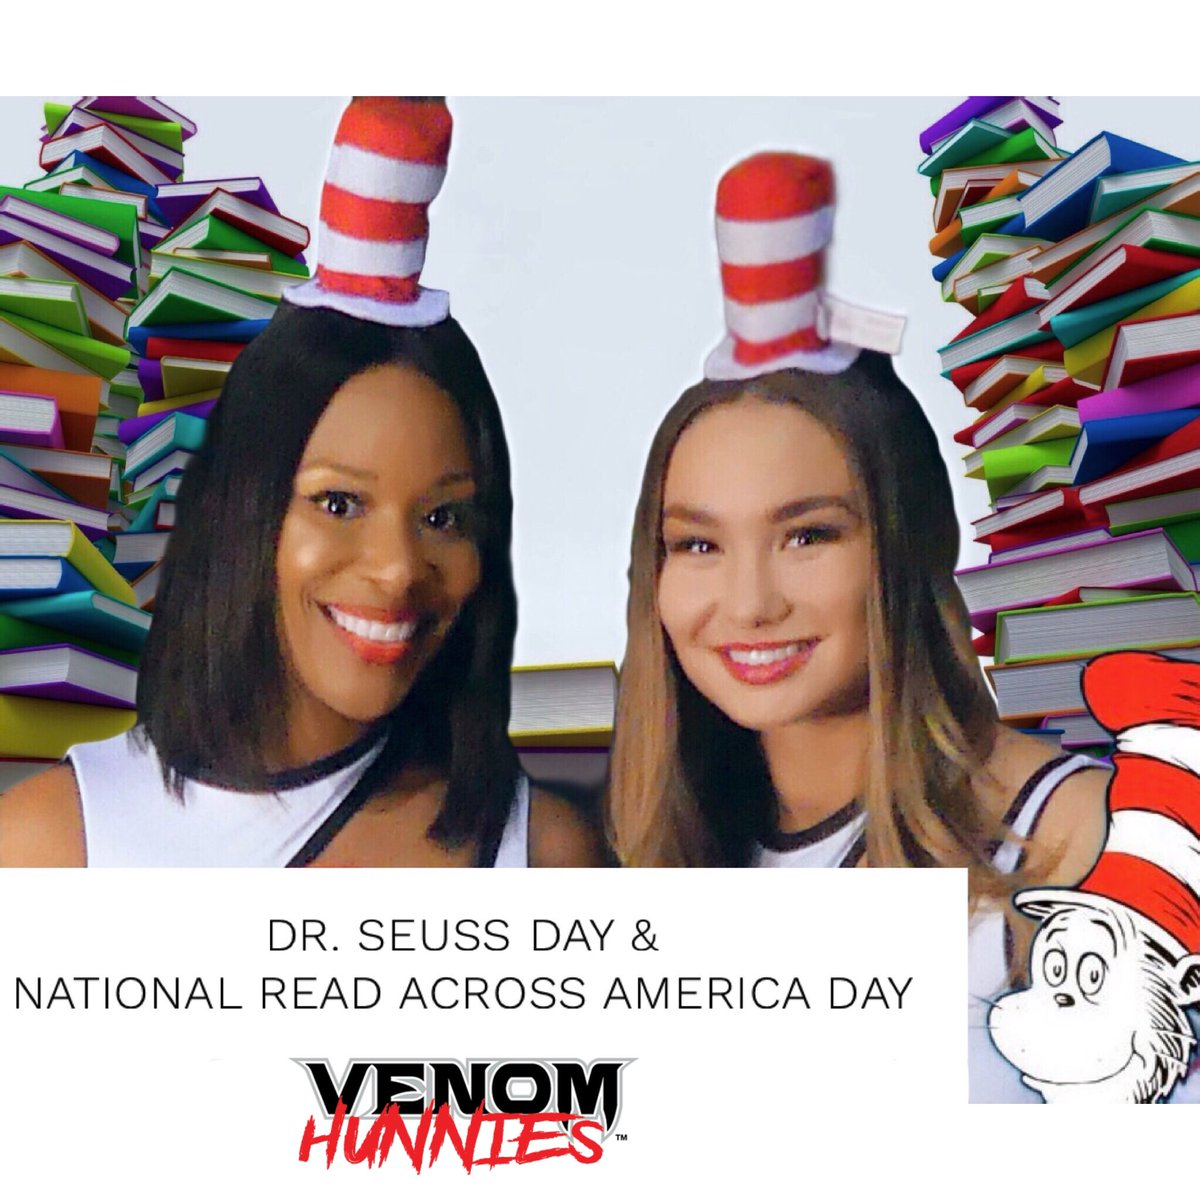 It's #DrSeussDay & #ReadAcrossAmericaDay today! Take a moment to read a book 📚  #read #reading #reader #goodreads #book #books #booklover #bookworm #DrSeuss #readingtime #readmorebooks #readersgonnaread #drseussweek #readacrossamerica #readacrossamericaweek #HunniesCheerleaders